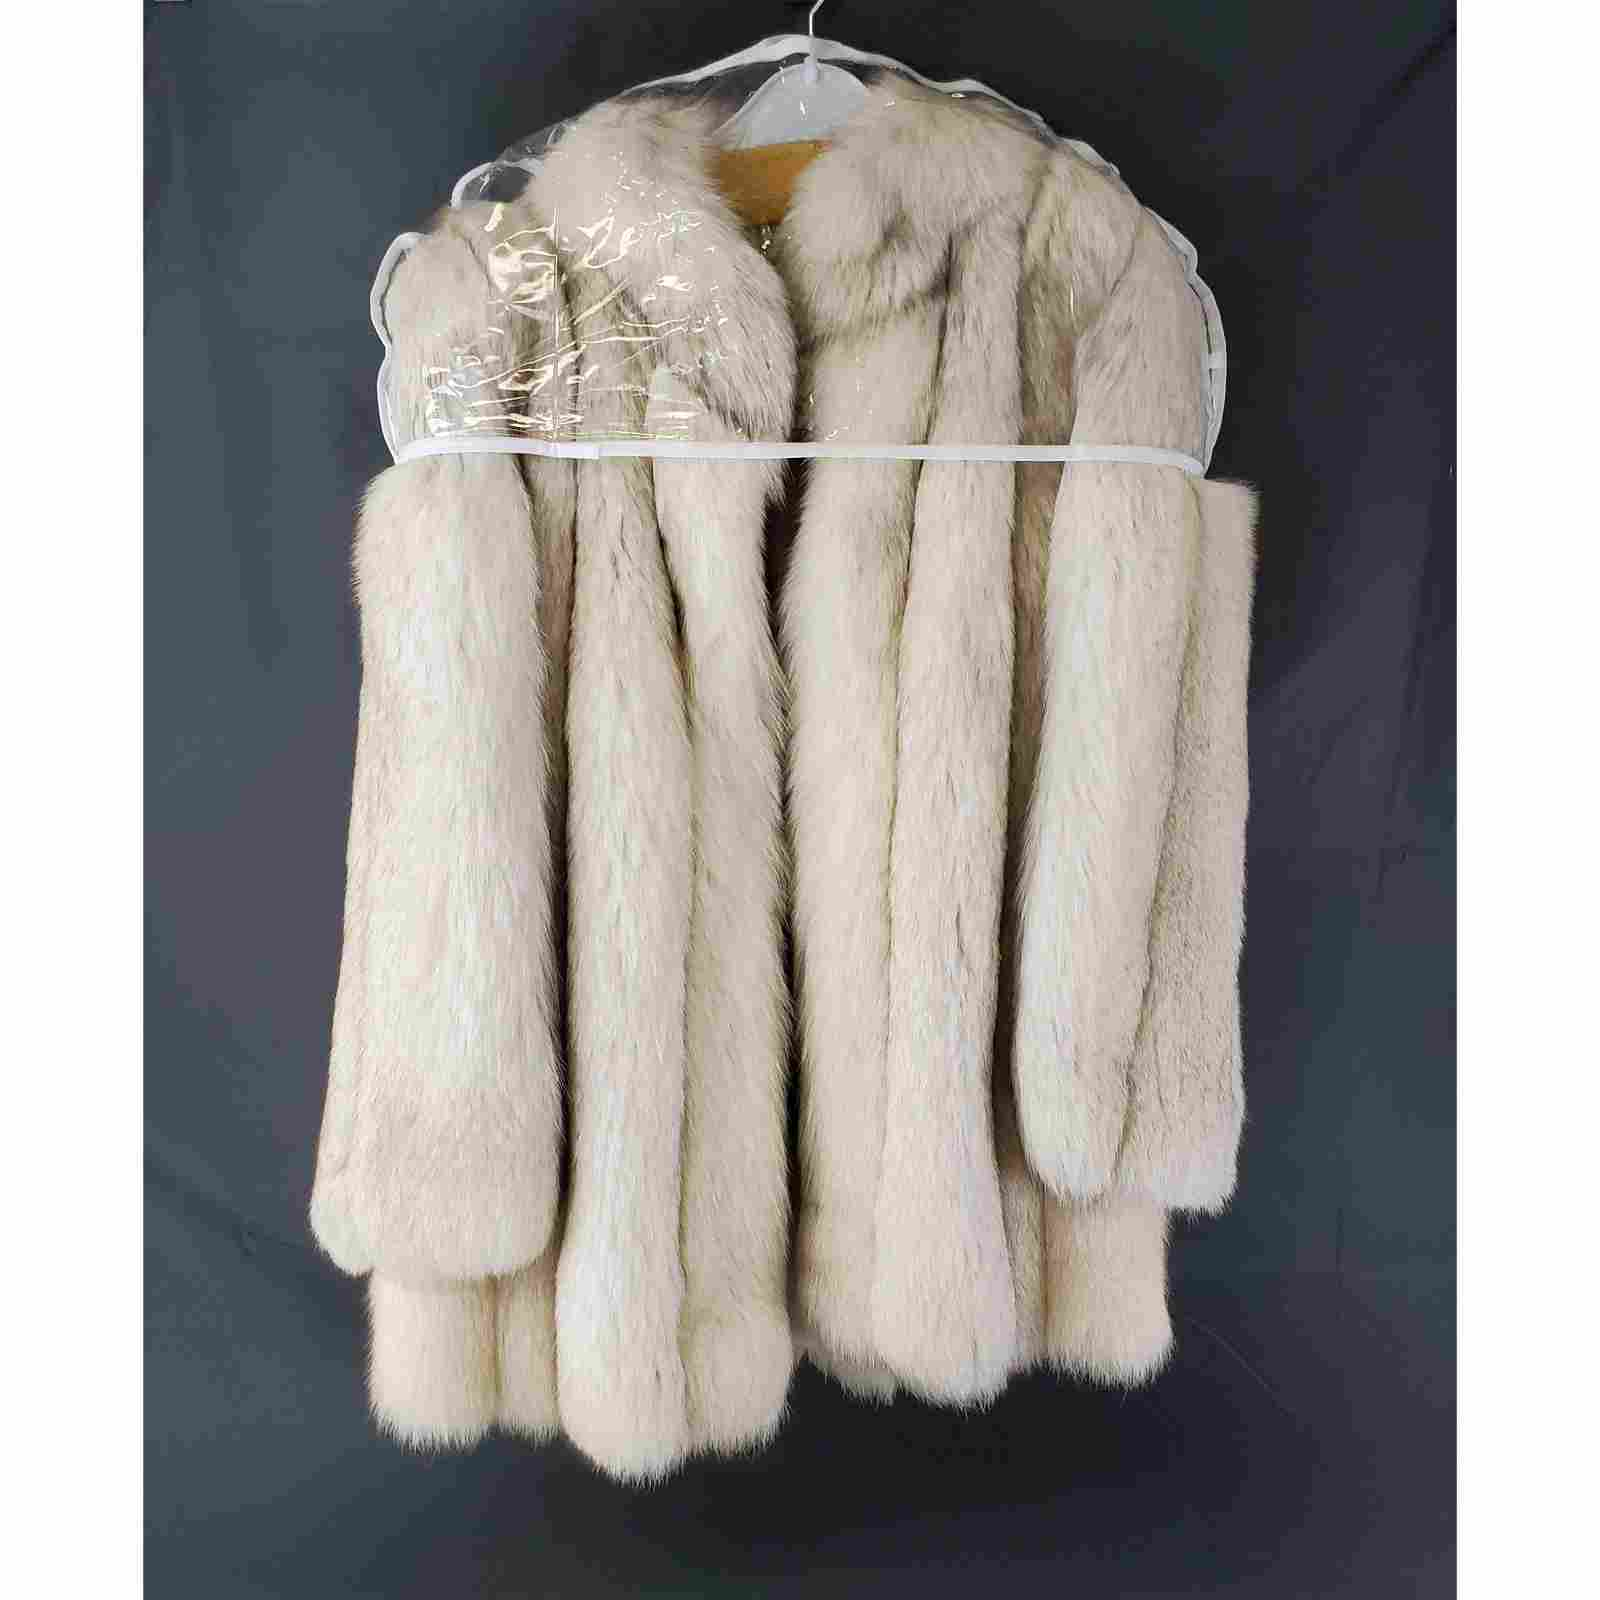 A fine White Fox Mink Jacket